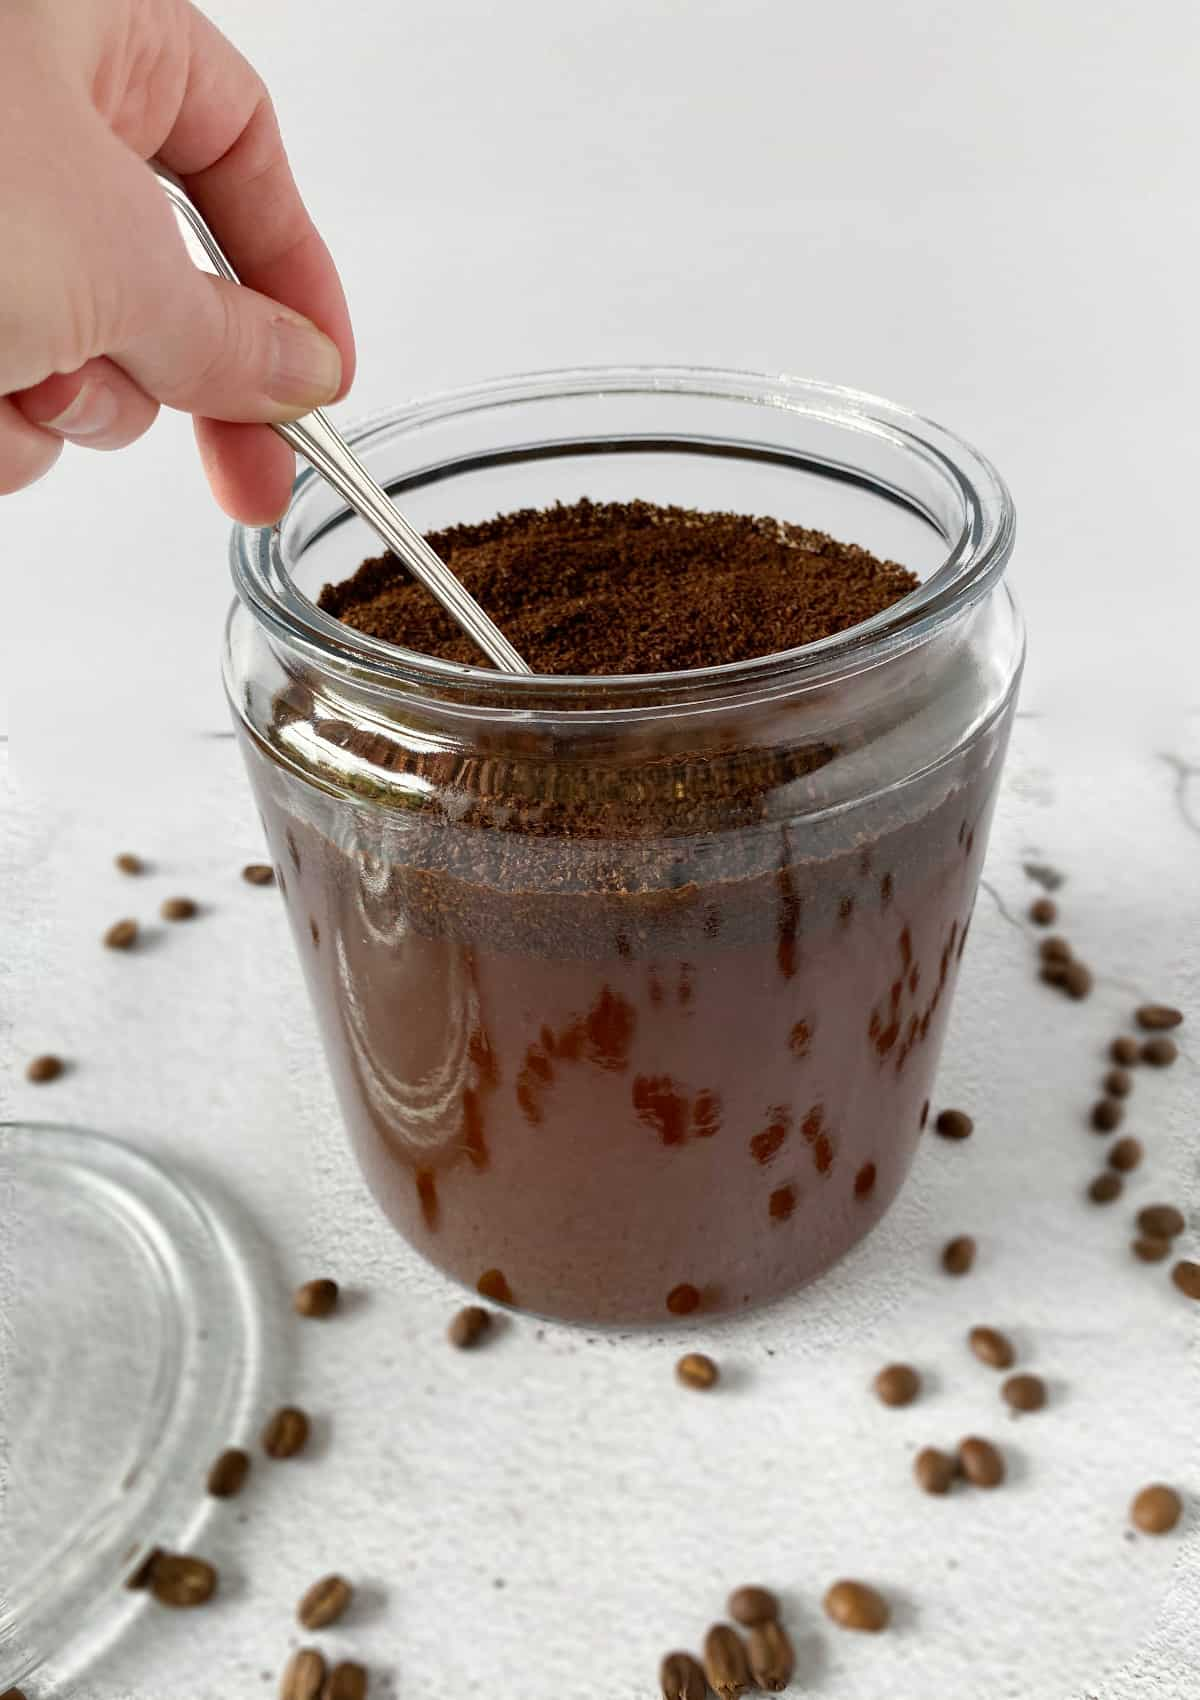 coffee grounds being stirred in a glass jar for homemade cold brew coffee